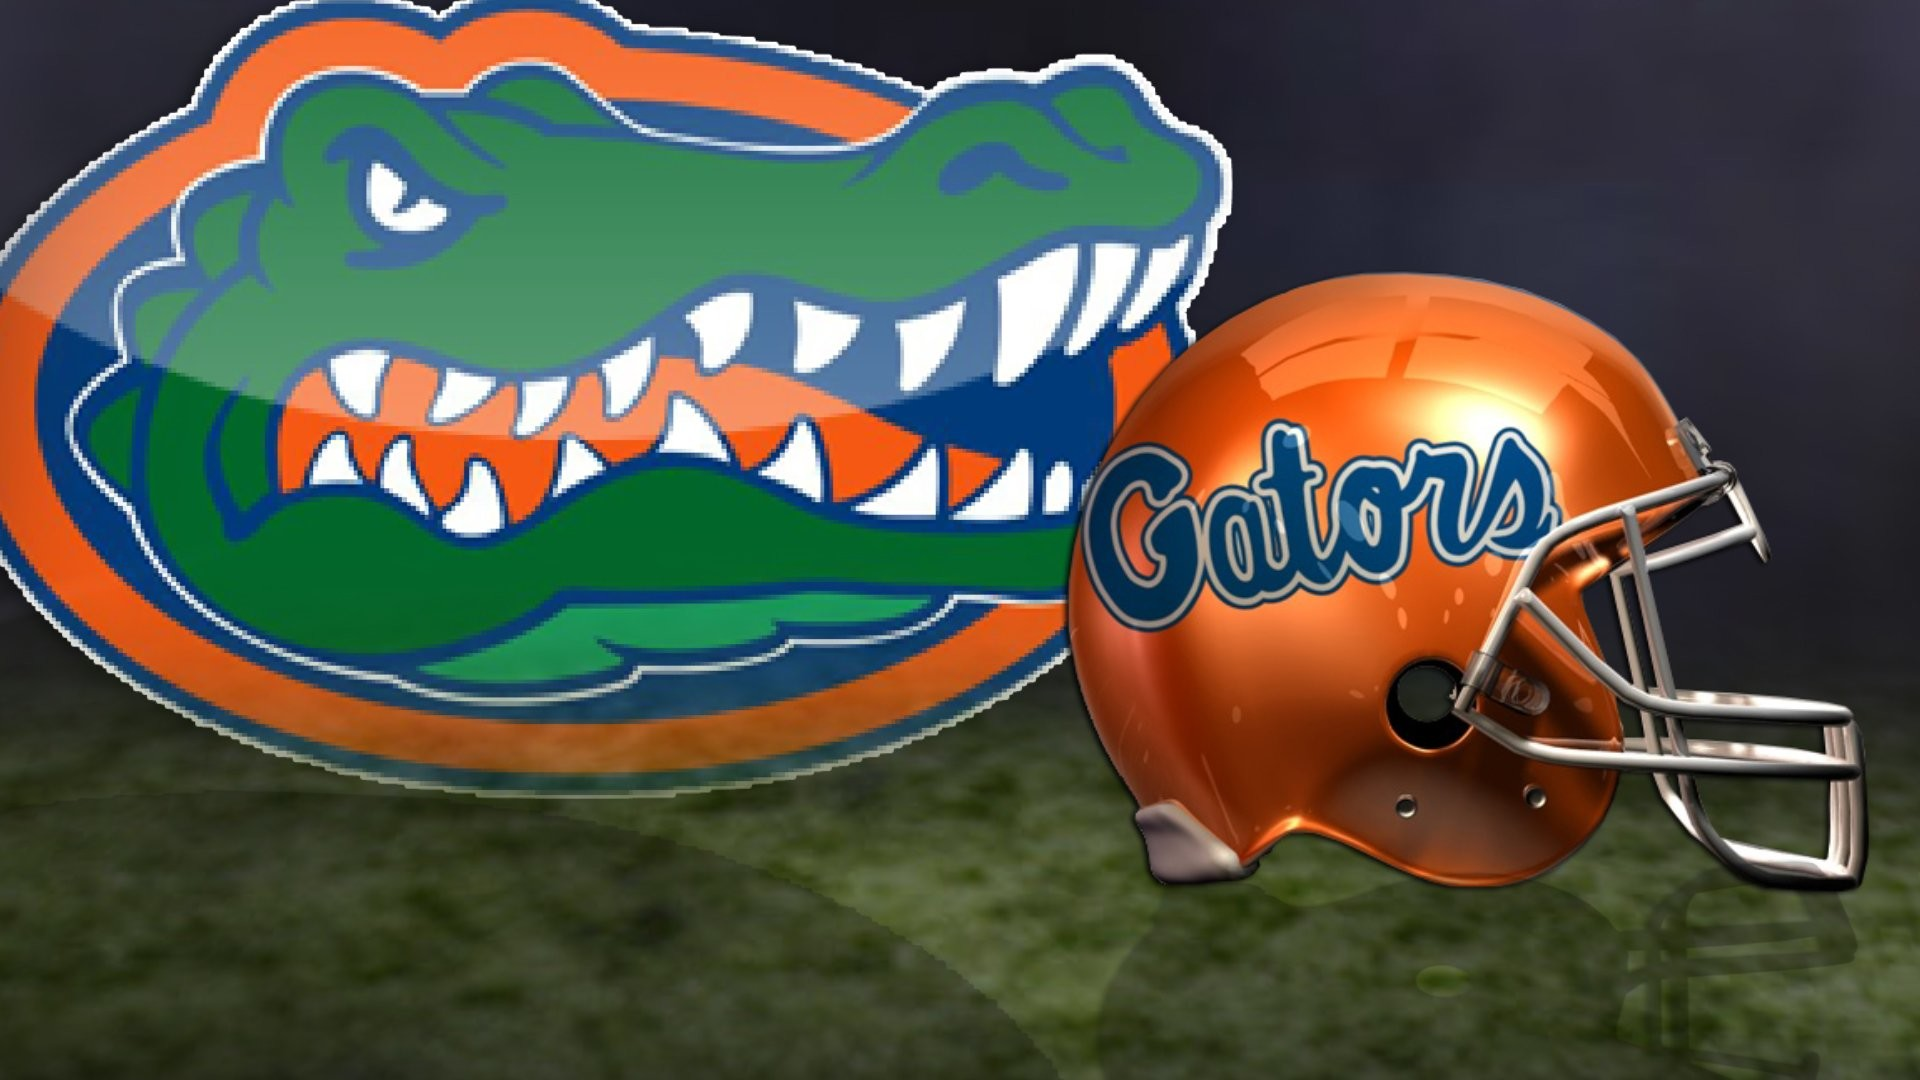 1920x1080 florida football wallpaper FLORIDA GATORS college football wallpaper   595523 WallpaperUP